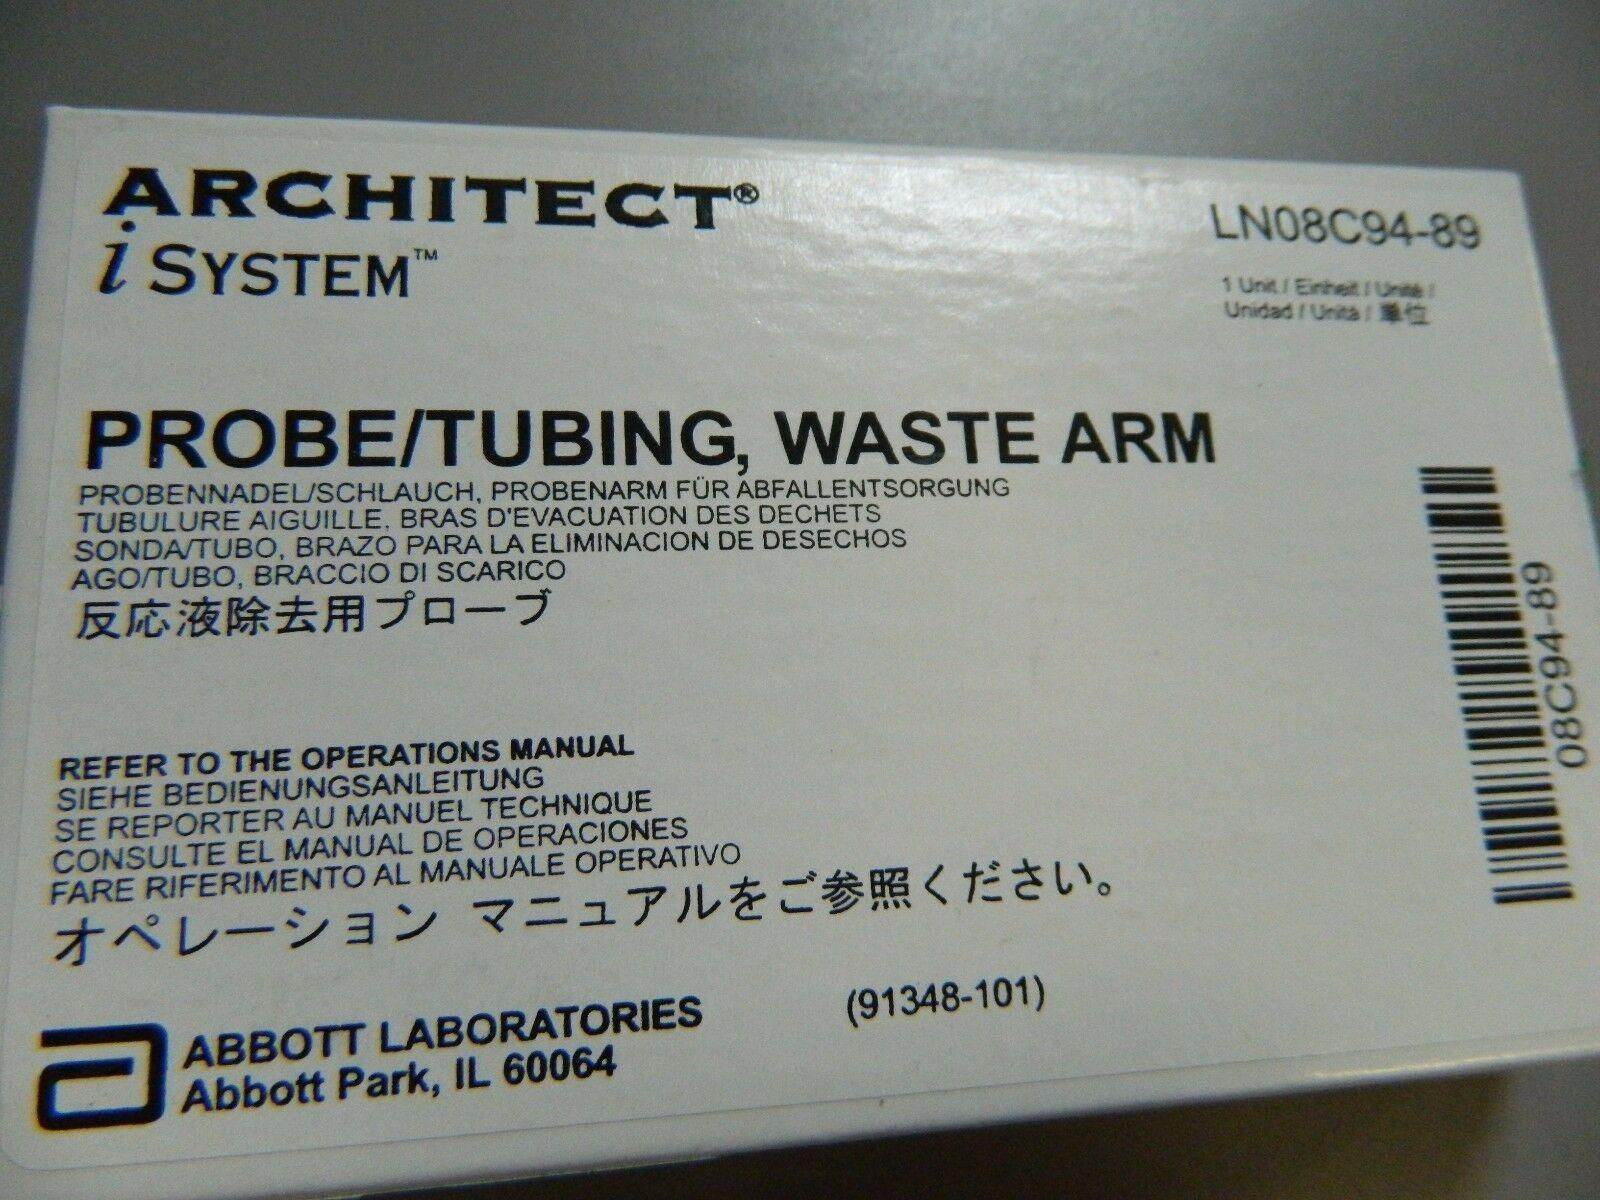 PROBE,TUBING, WASTE ARM P/N 08C94-89 FOR ARCHITECT i2000 SR SYSTEMS